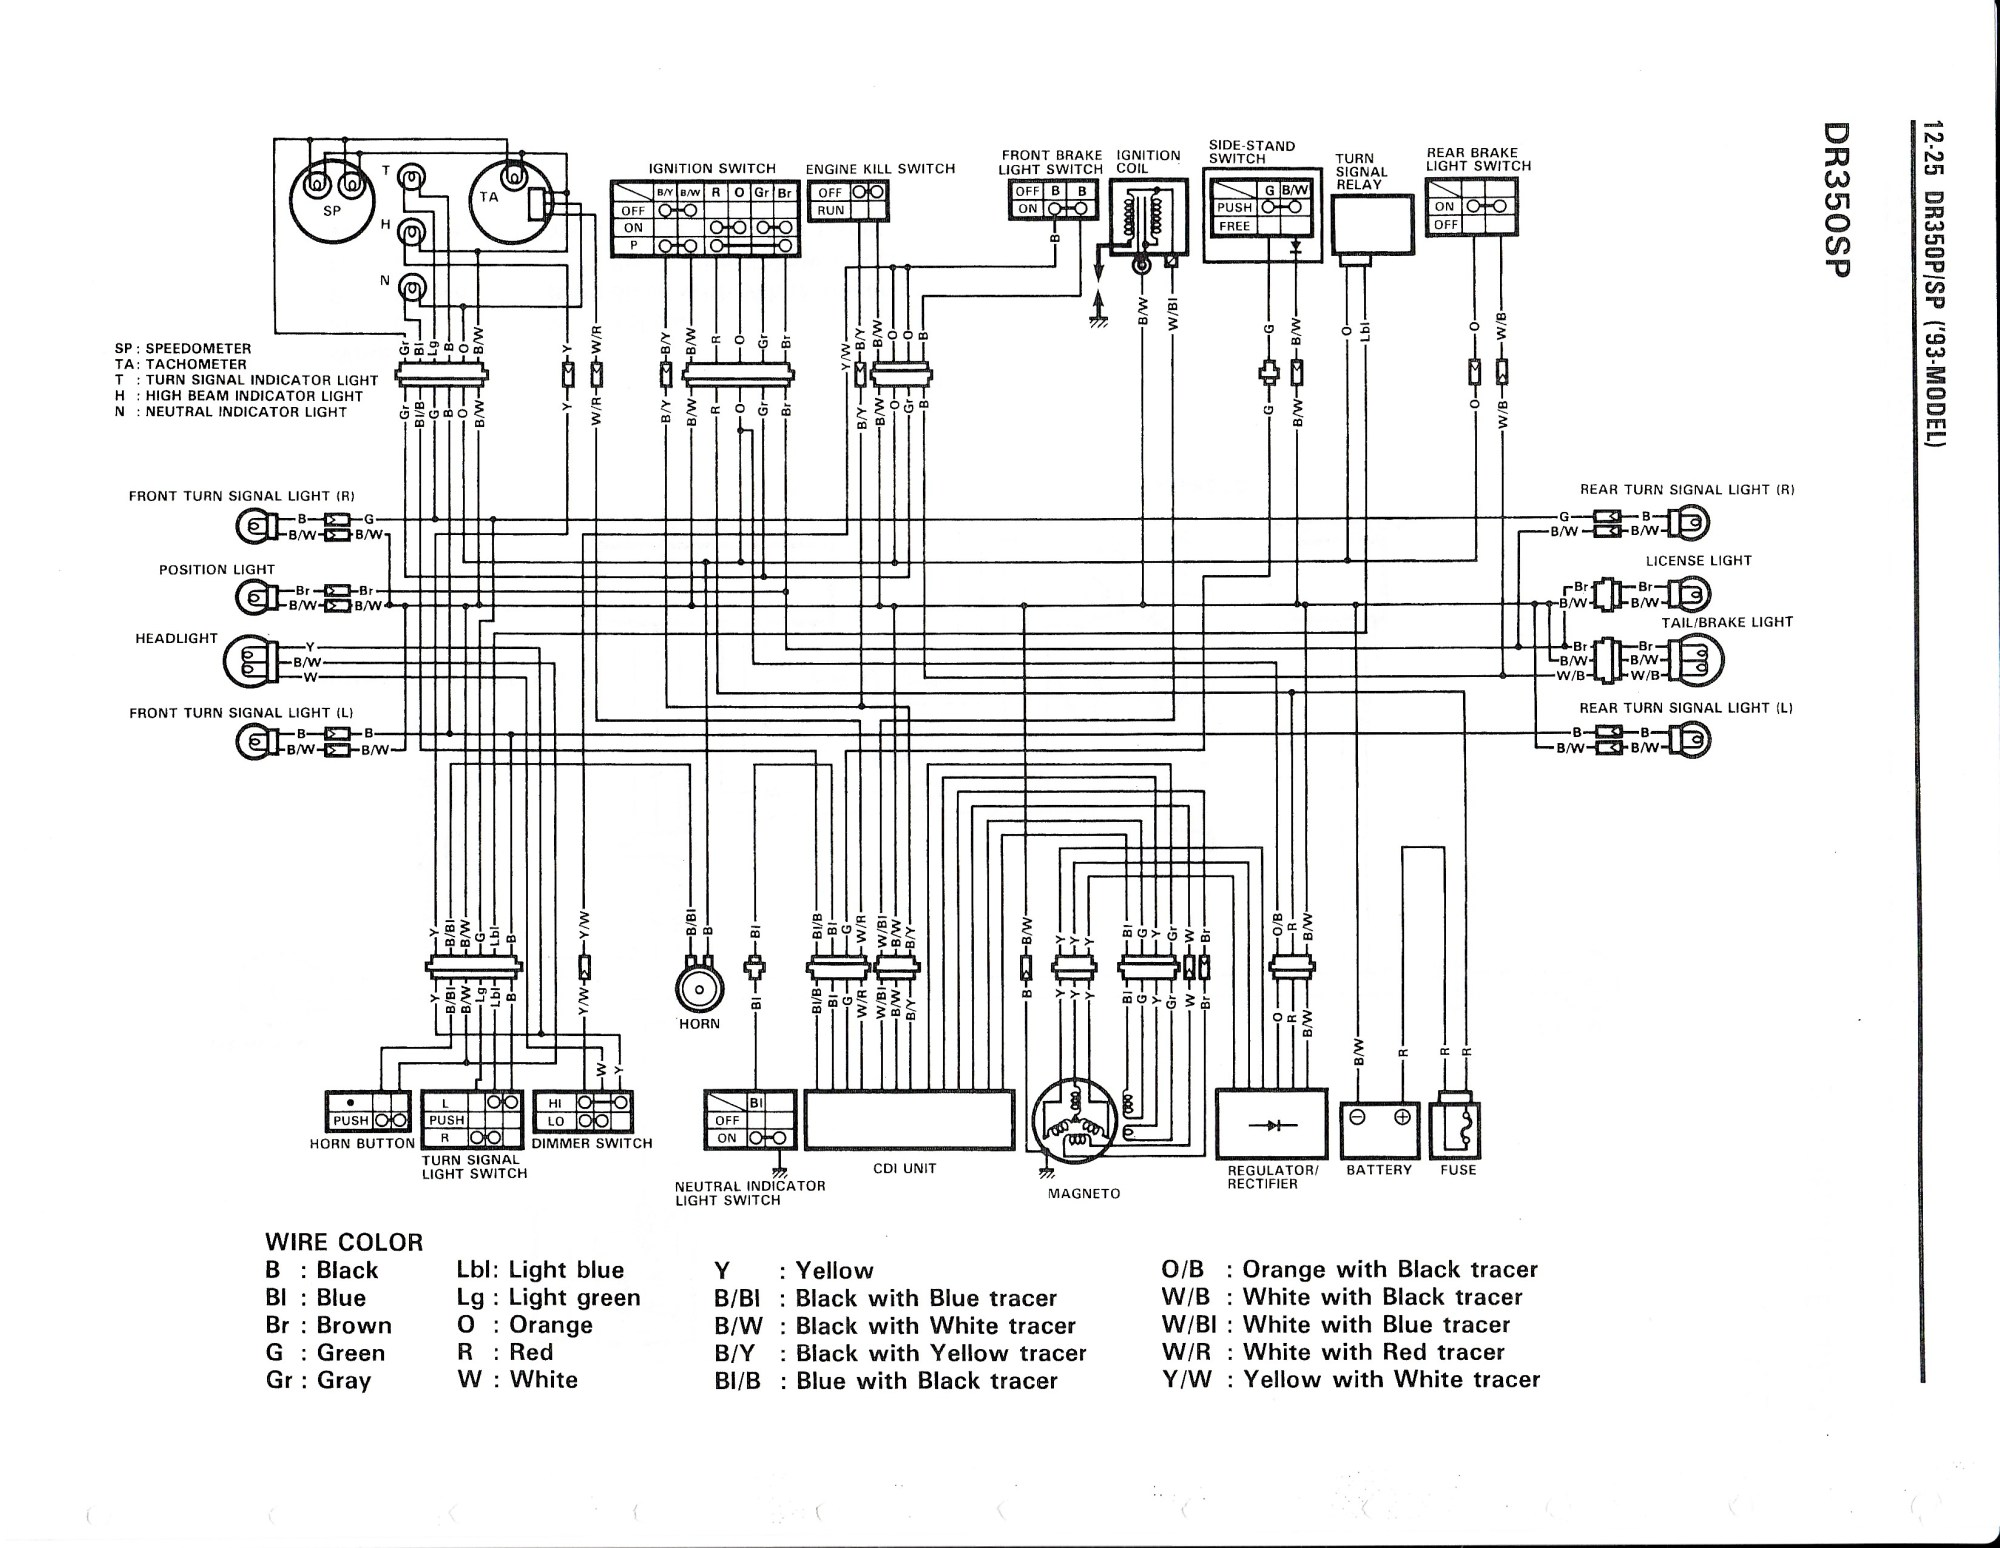 hight resolution of wiring diagram 1993 dr 350 wiring diagram namewiring diagram for the dr350 s 1993 and